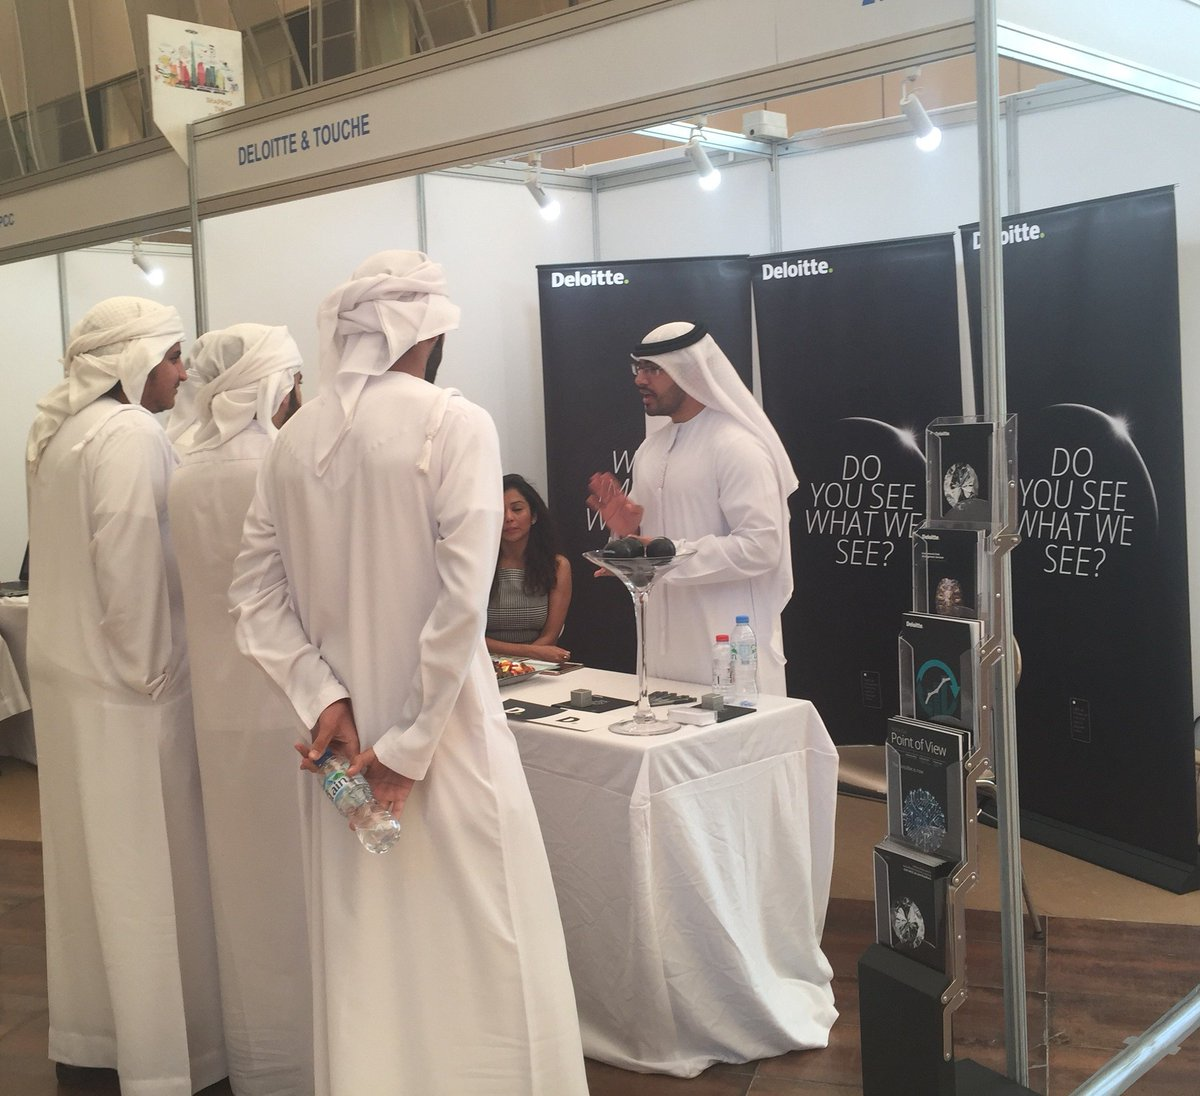 Deloitteme Jobs On Twitter Deloitte Professionals Took Part In This Year S Zayeduniversity Career Fair Abu Dhabi Campus And Answered All Questions That The Attendees Had Impactthatmatters Deloittecareers Uae Https T Co Gf8gxm4msg